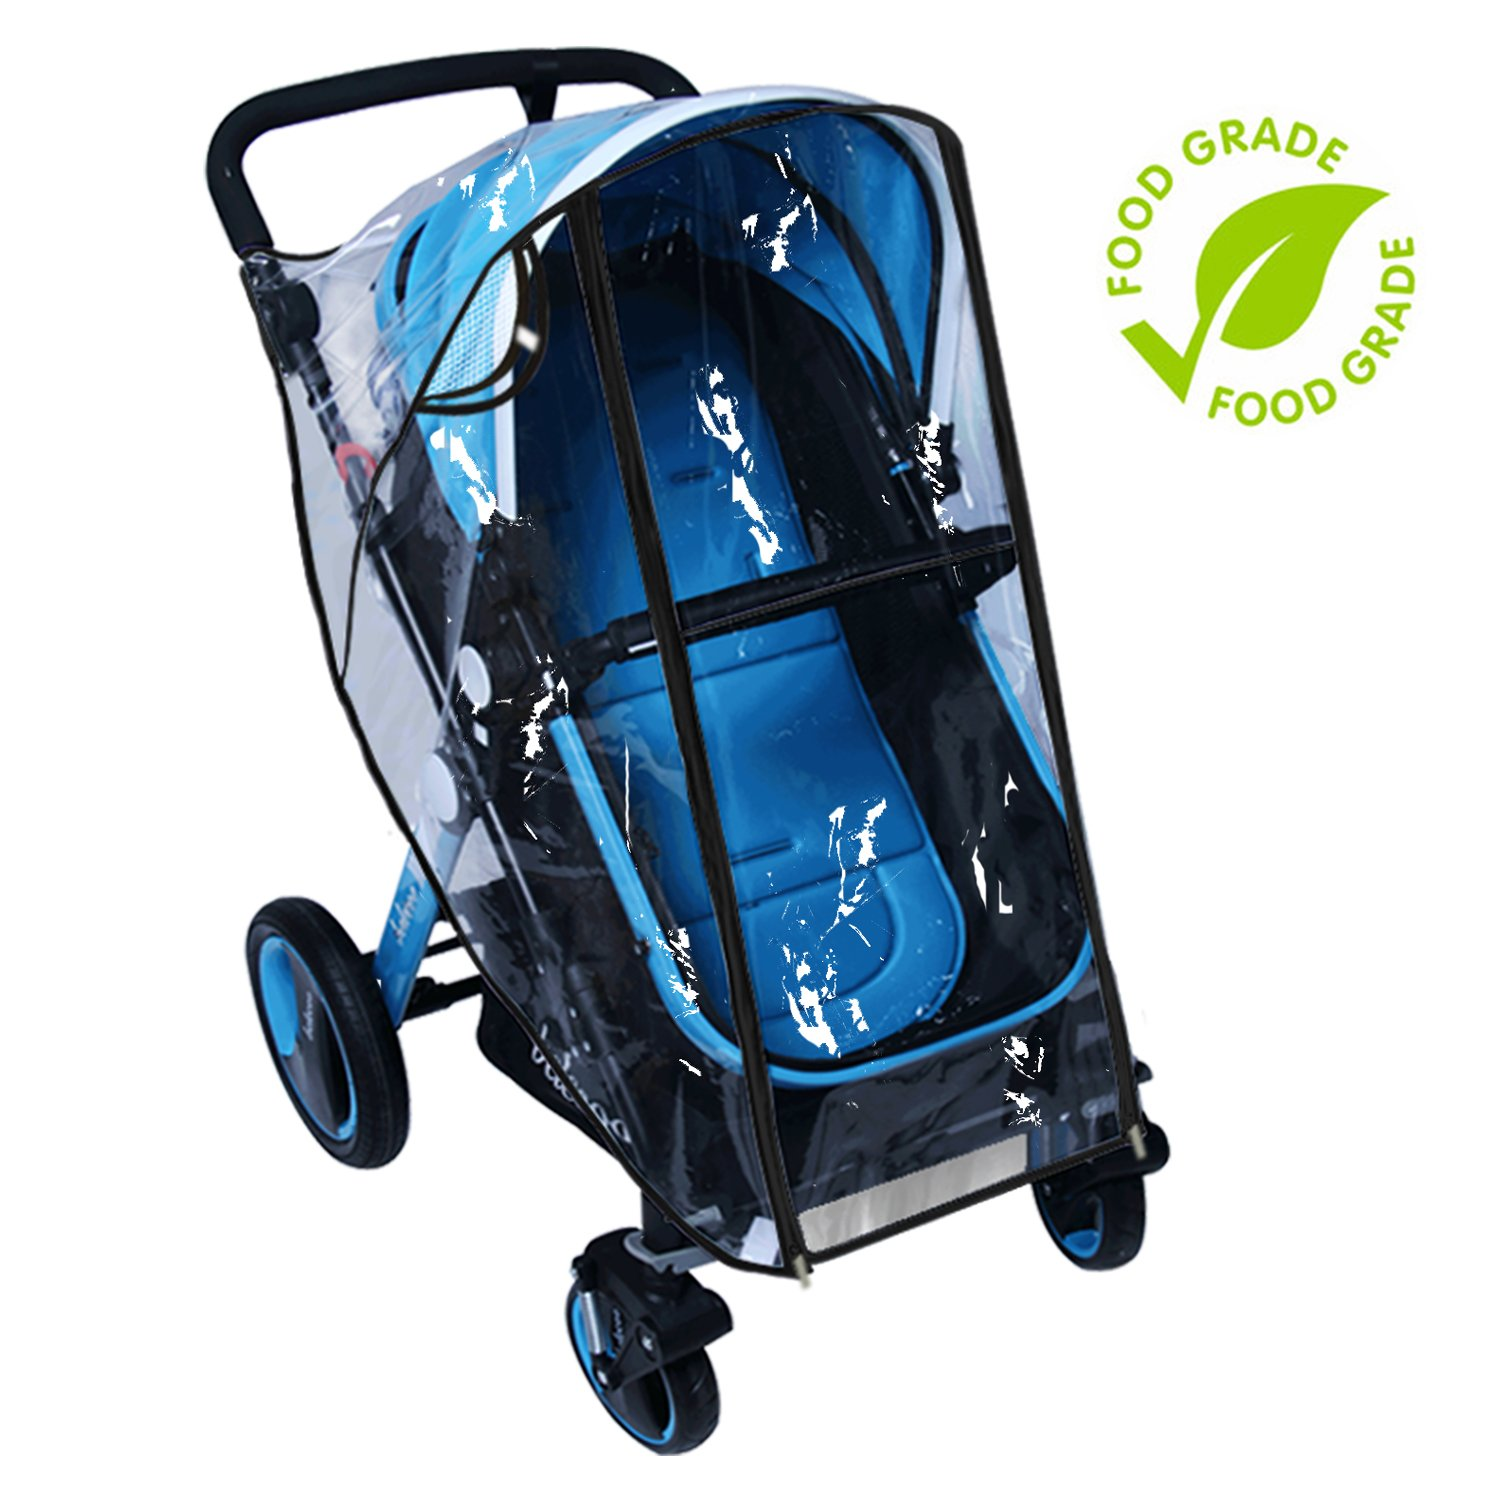 460c8f414e5b Baby Stroller Rain Cover Weather Shield Accessories Universal Size Protect  from Rain Wind Snow...